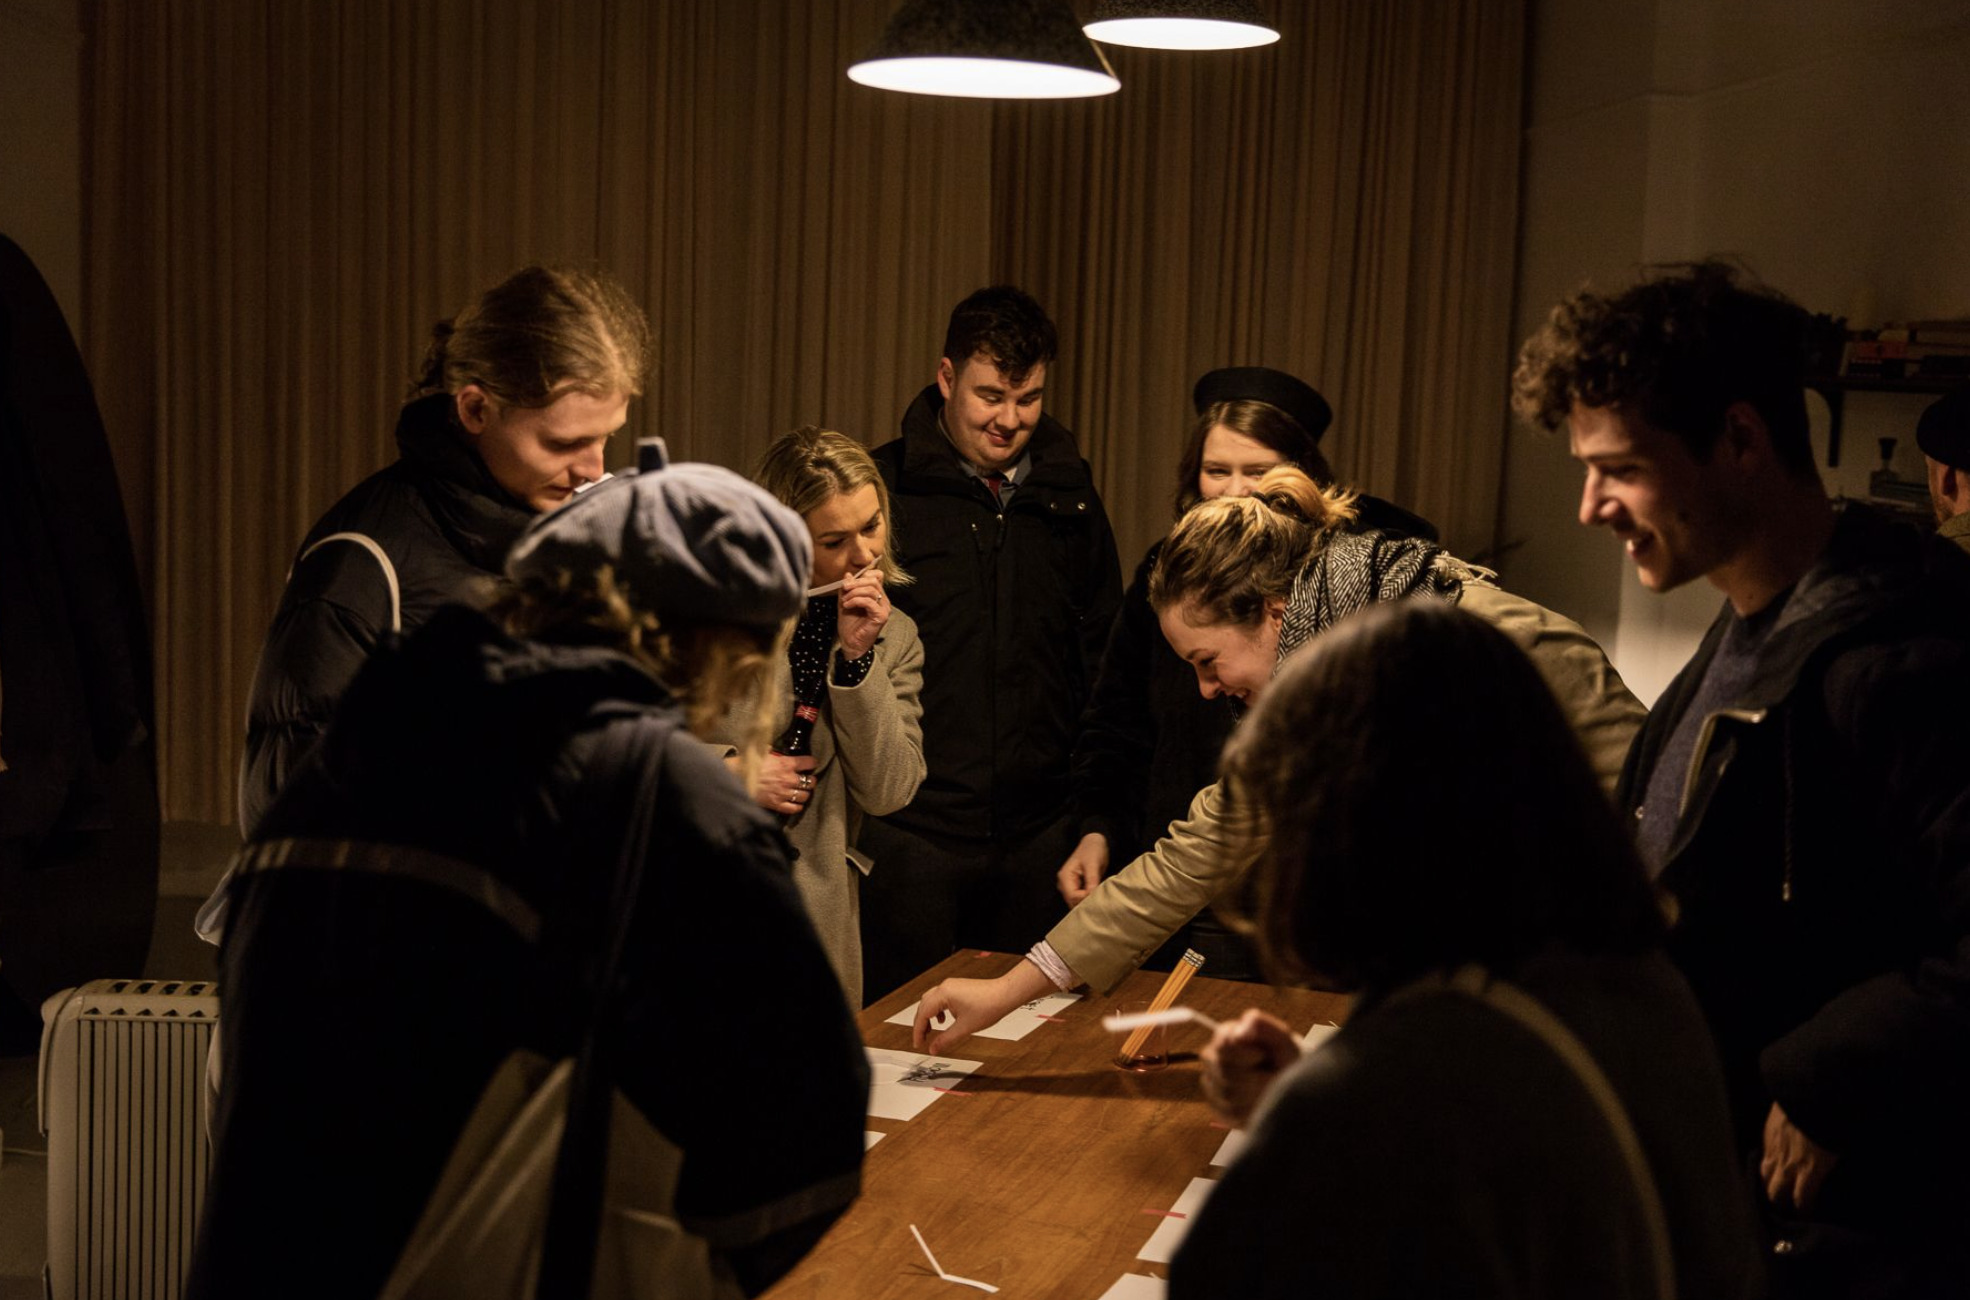 A group of people standing are gathered around a large table. They are smelling different strips of paper and conversing.